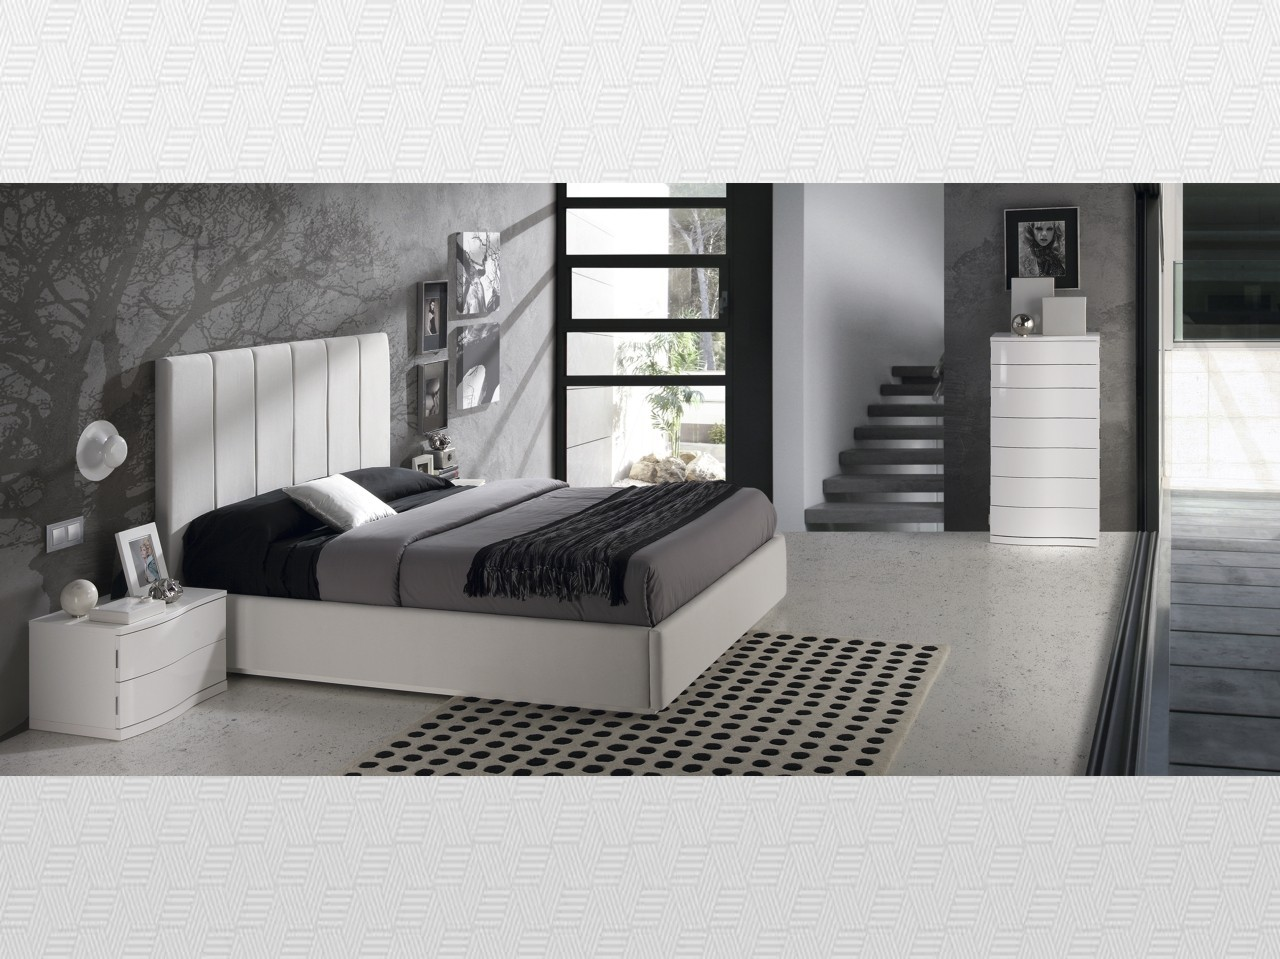 Dormitorio matrimonio blanco blanco lacado tapizado for Muebles matrimonio